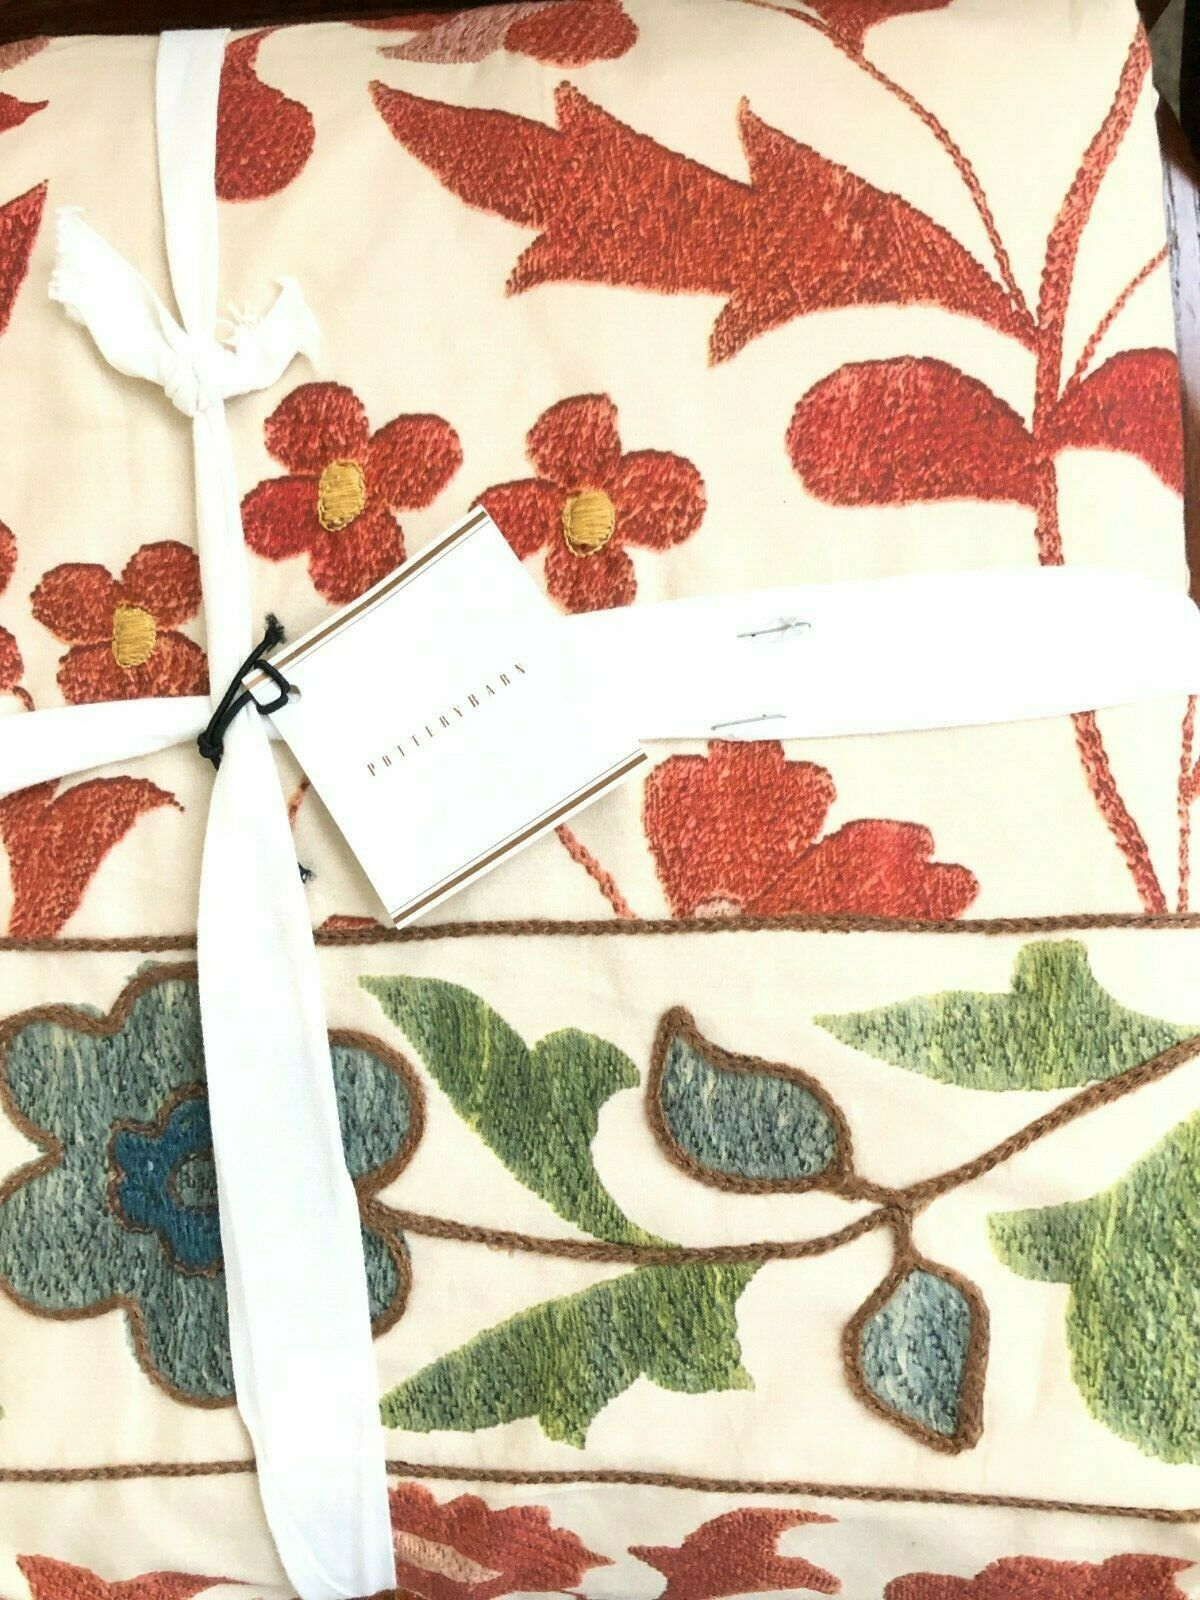 POTTERY BARN RAMONA PRINTED EMBROIDErot DUVET COVER